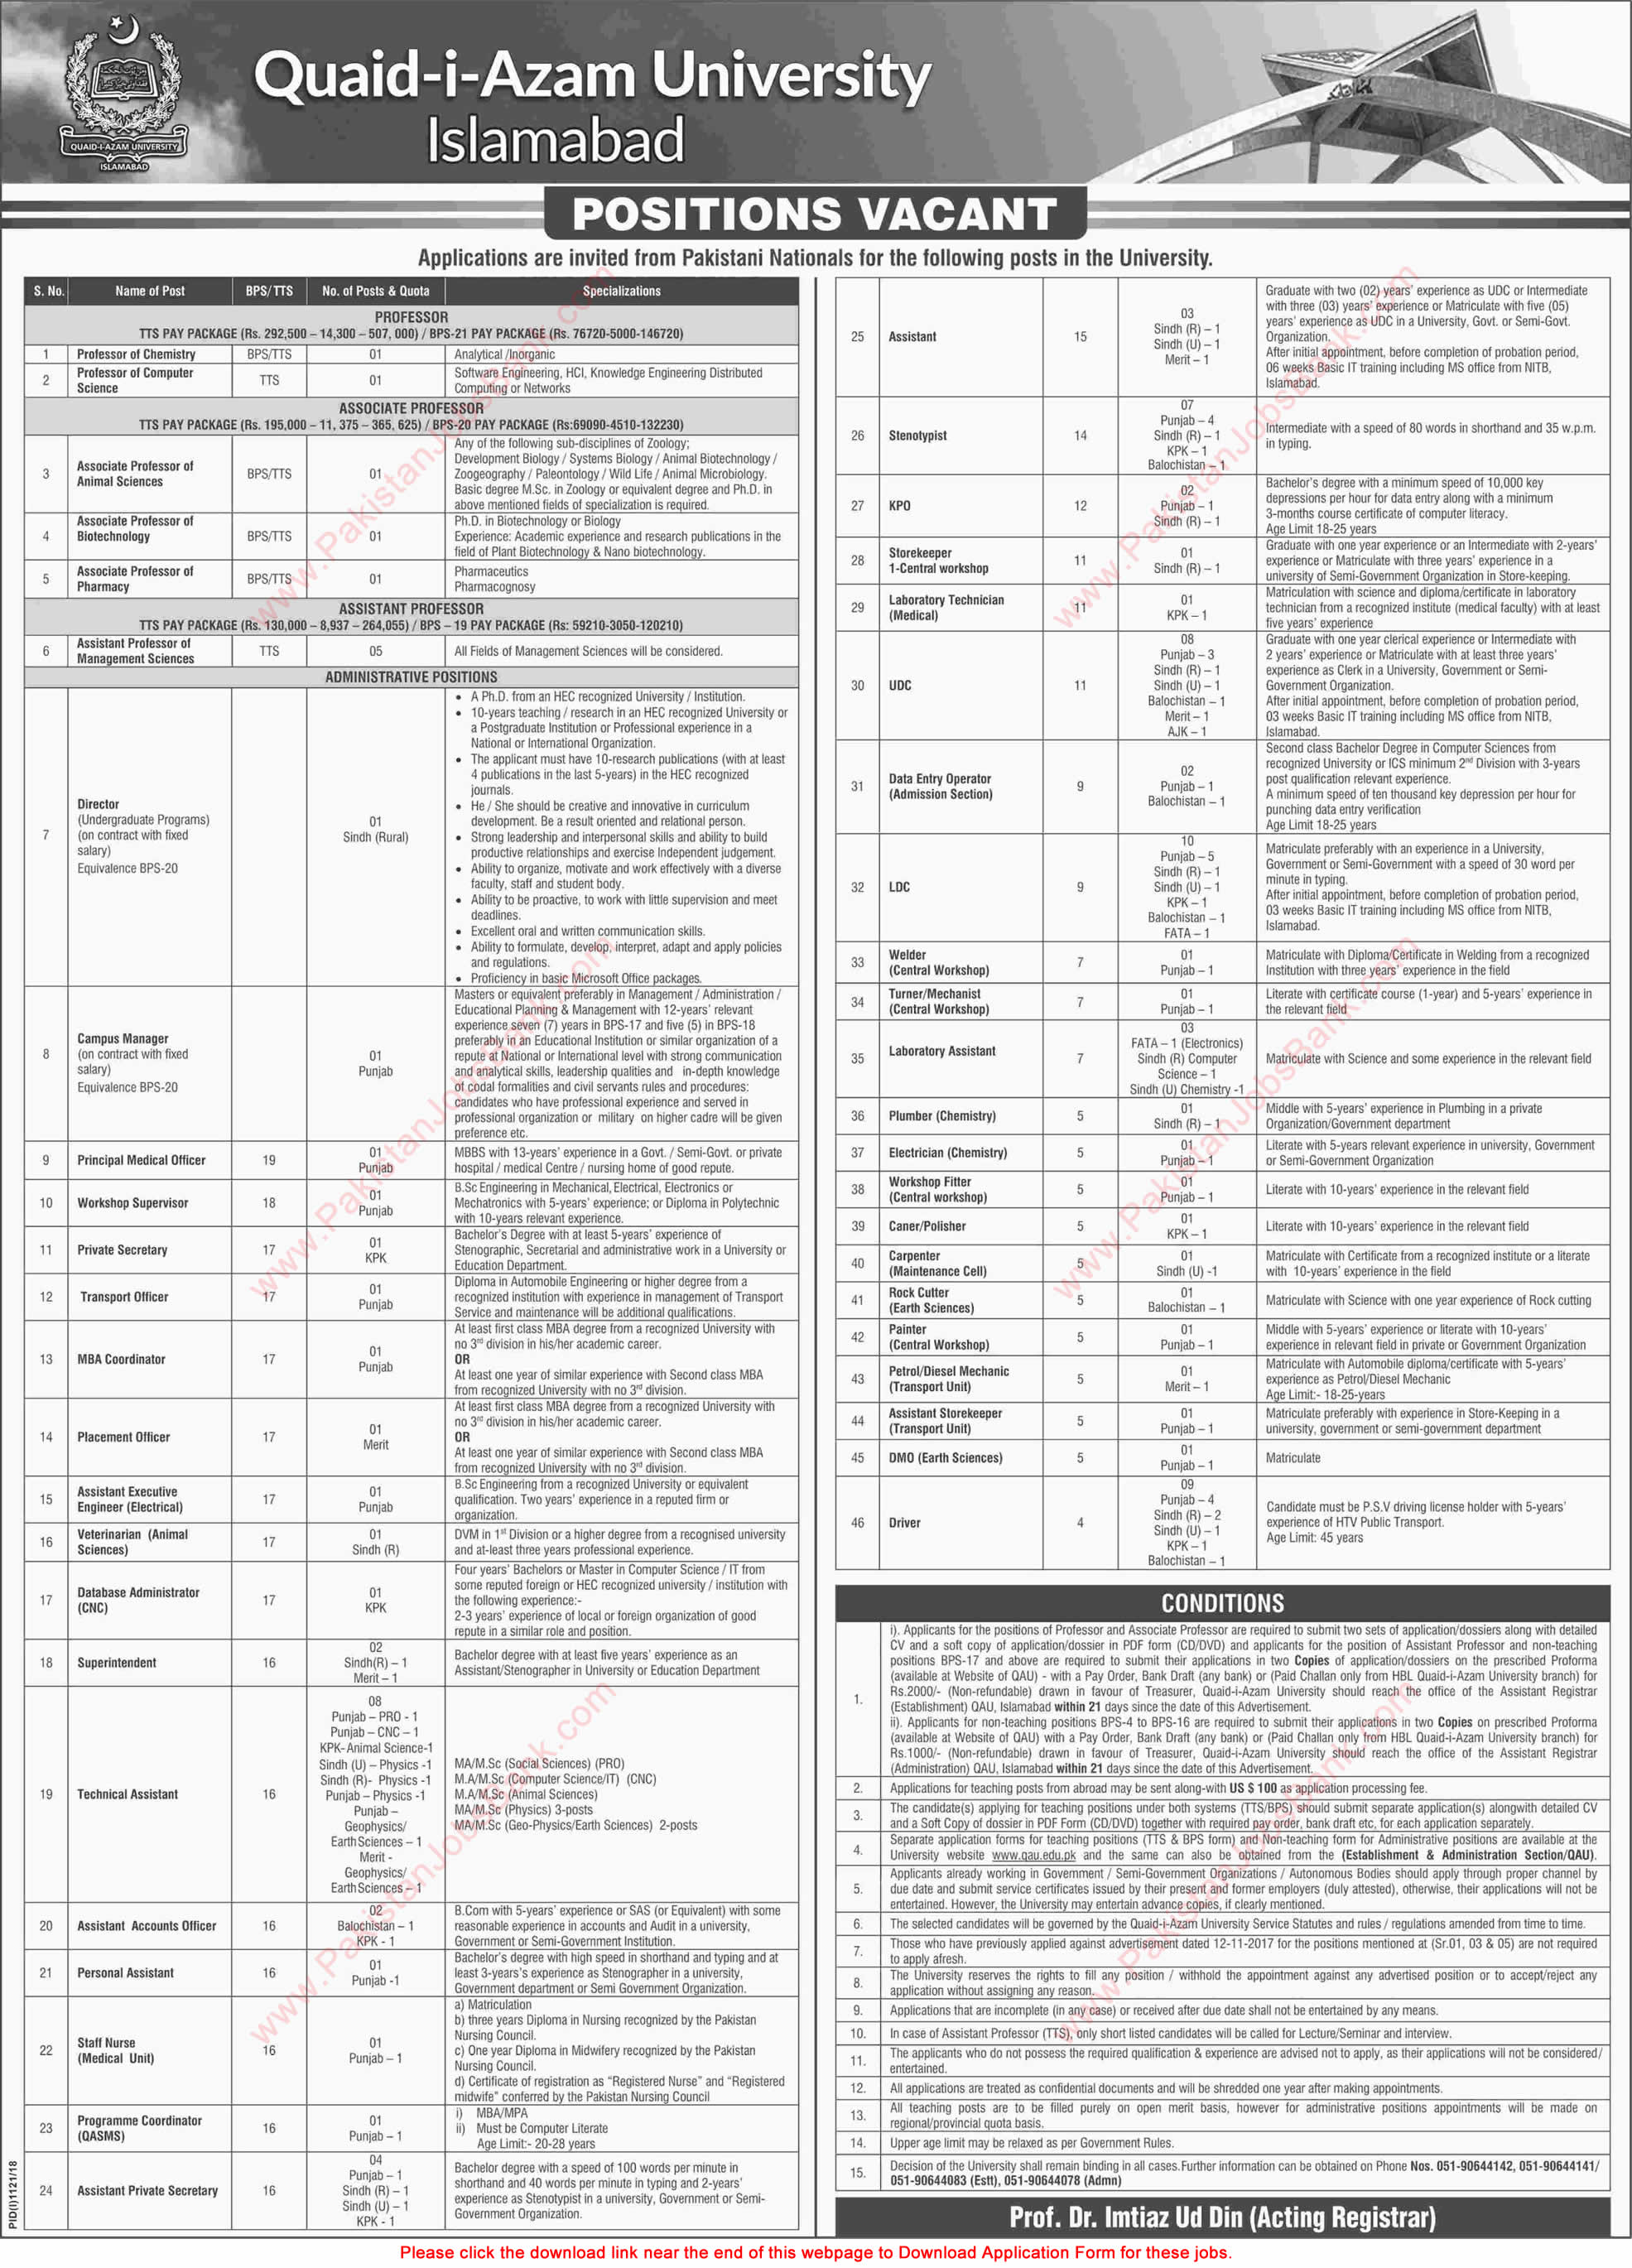 Ad_Dawn_Job_20180909_010 Qau Degree Application Form on dept chmistry, bba department, it department, university logo, islamabad logo, earth science, fee structure for bs, itt dr names, faculty male, dr amena zubari, closing merit, islamabad round area, faculty female,